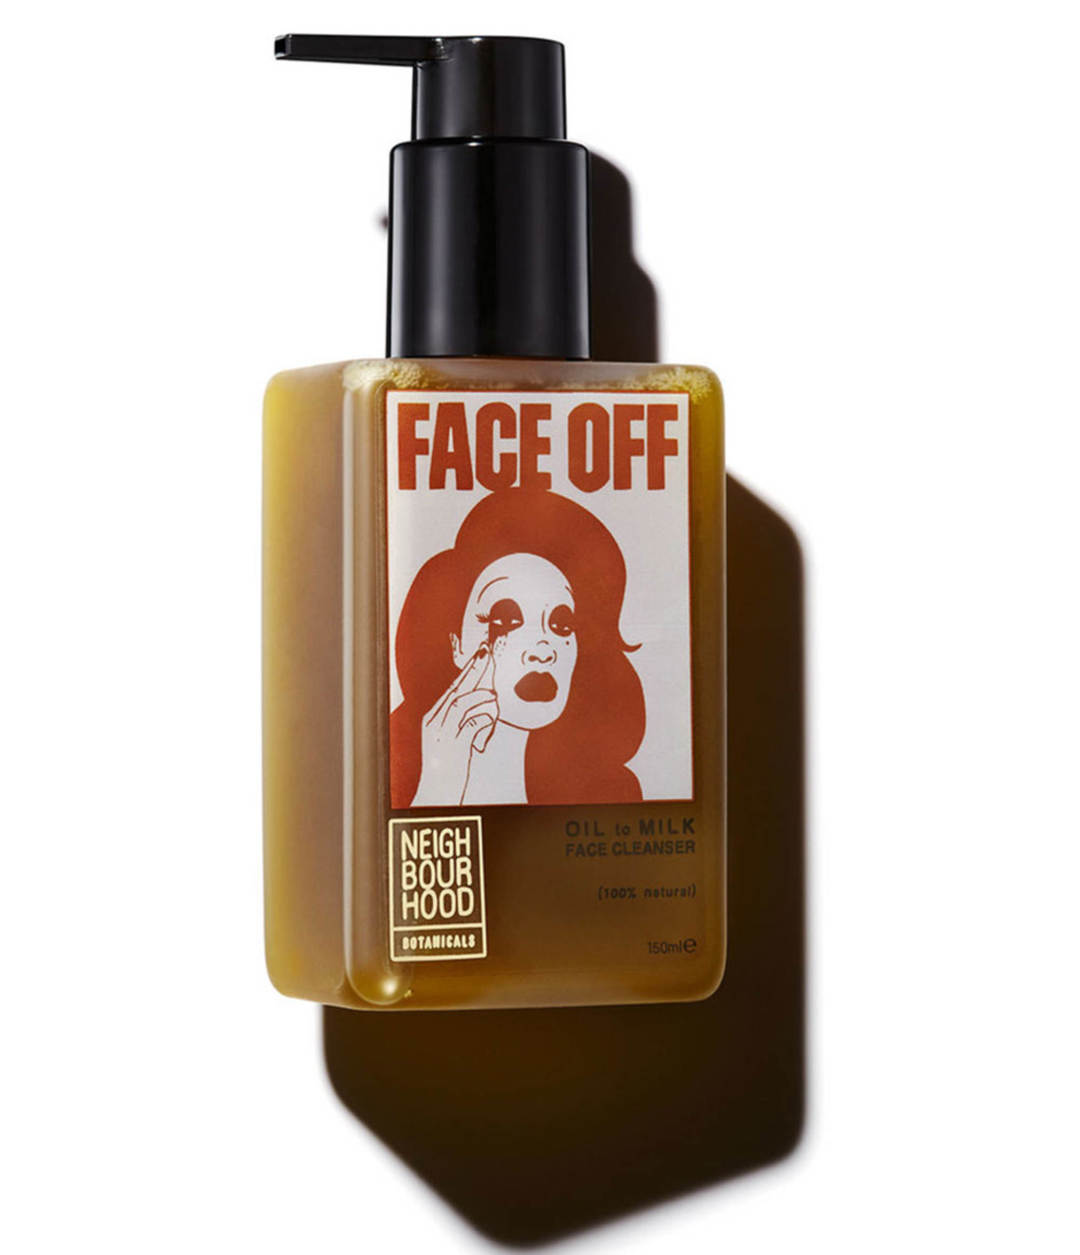 Neighbourhood-botanicals-face-off